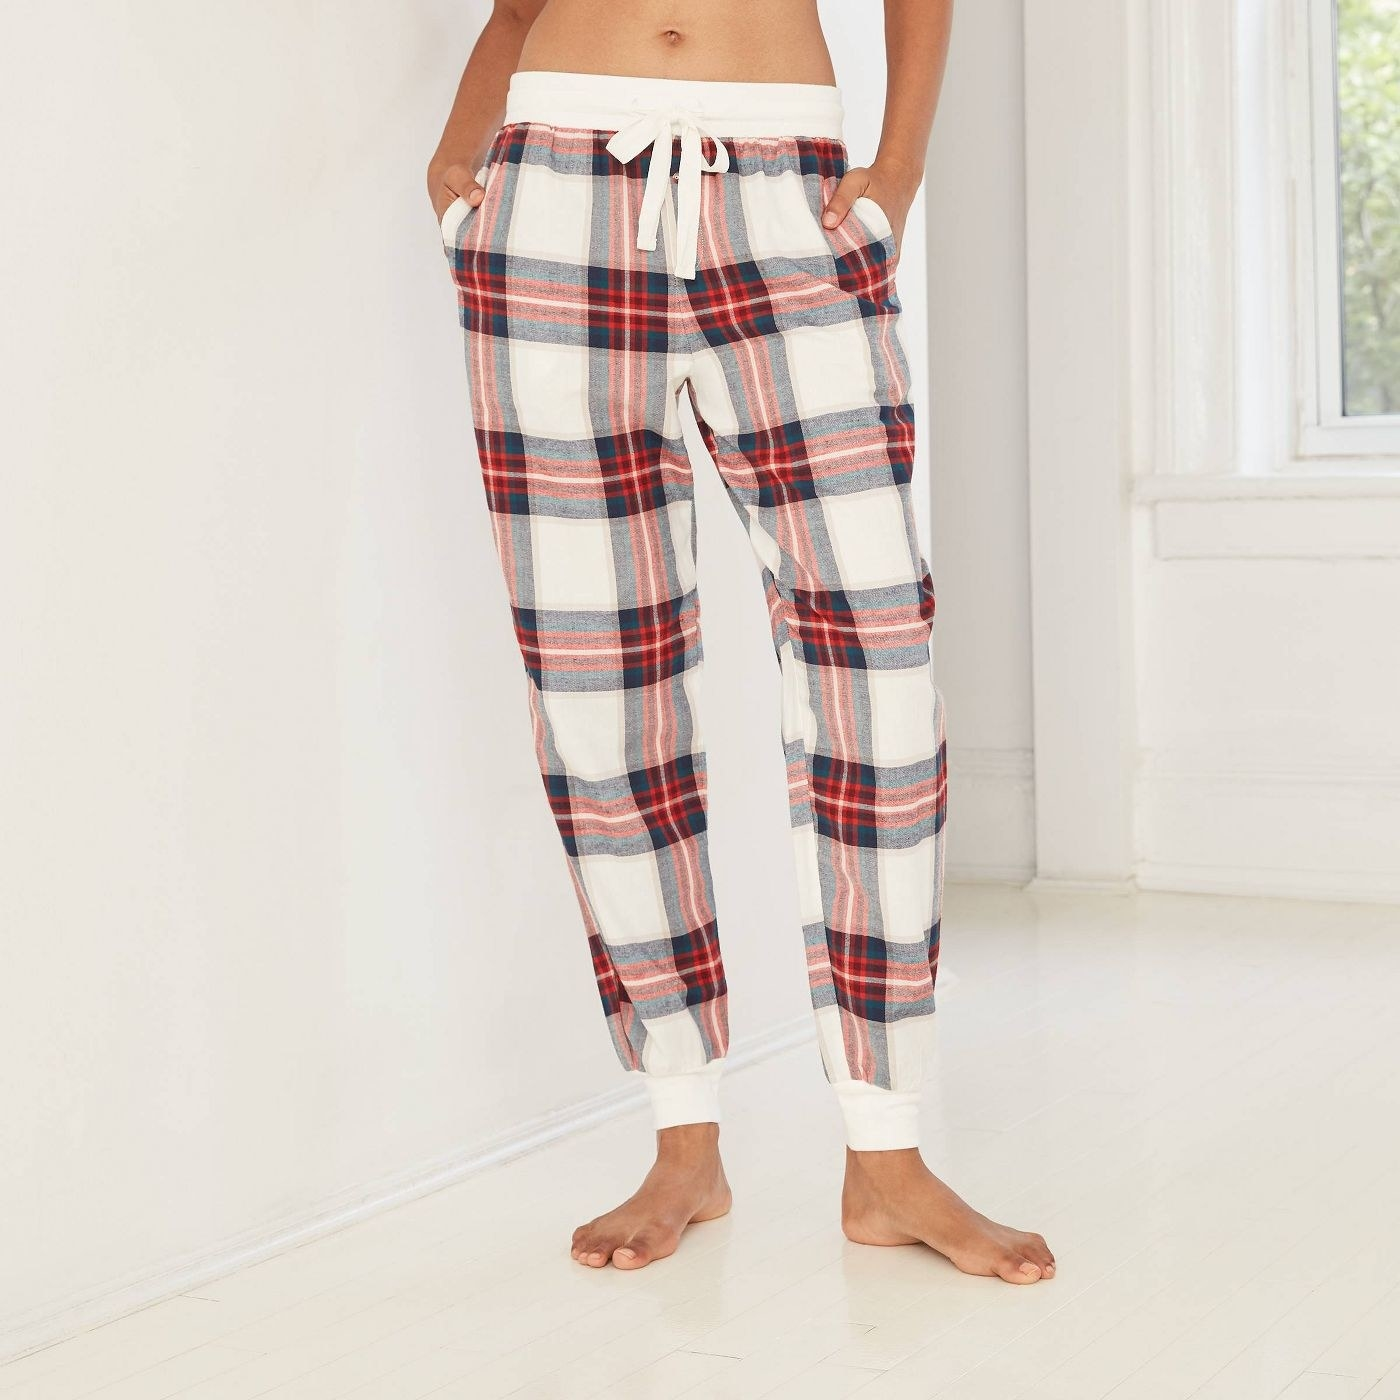 Model in cozy plaid flannel jogger pants